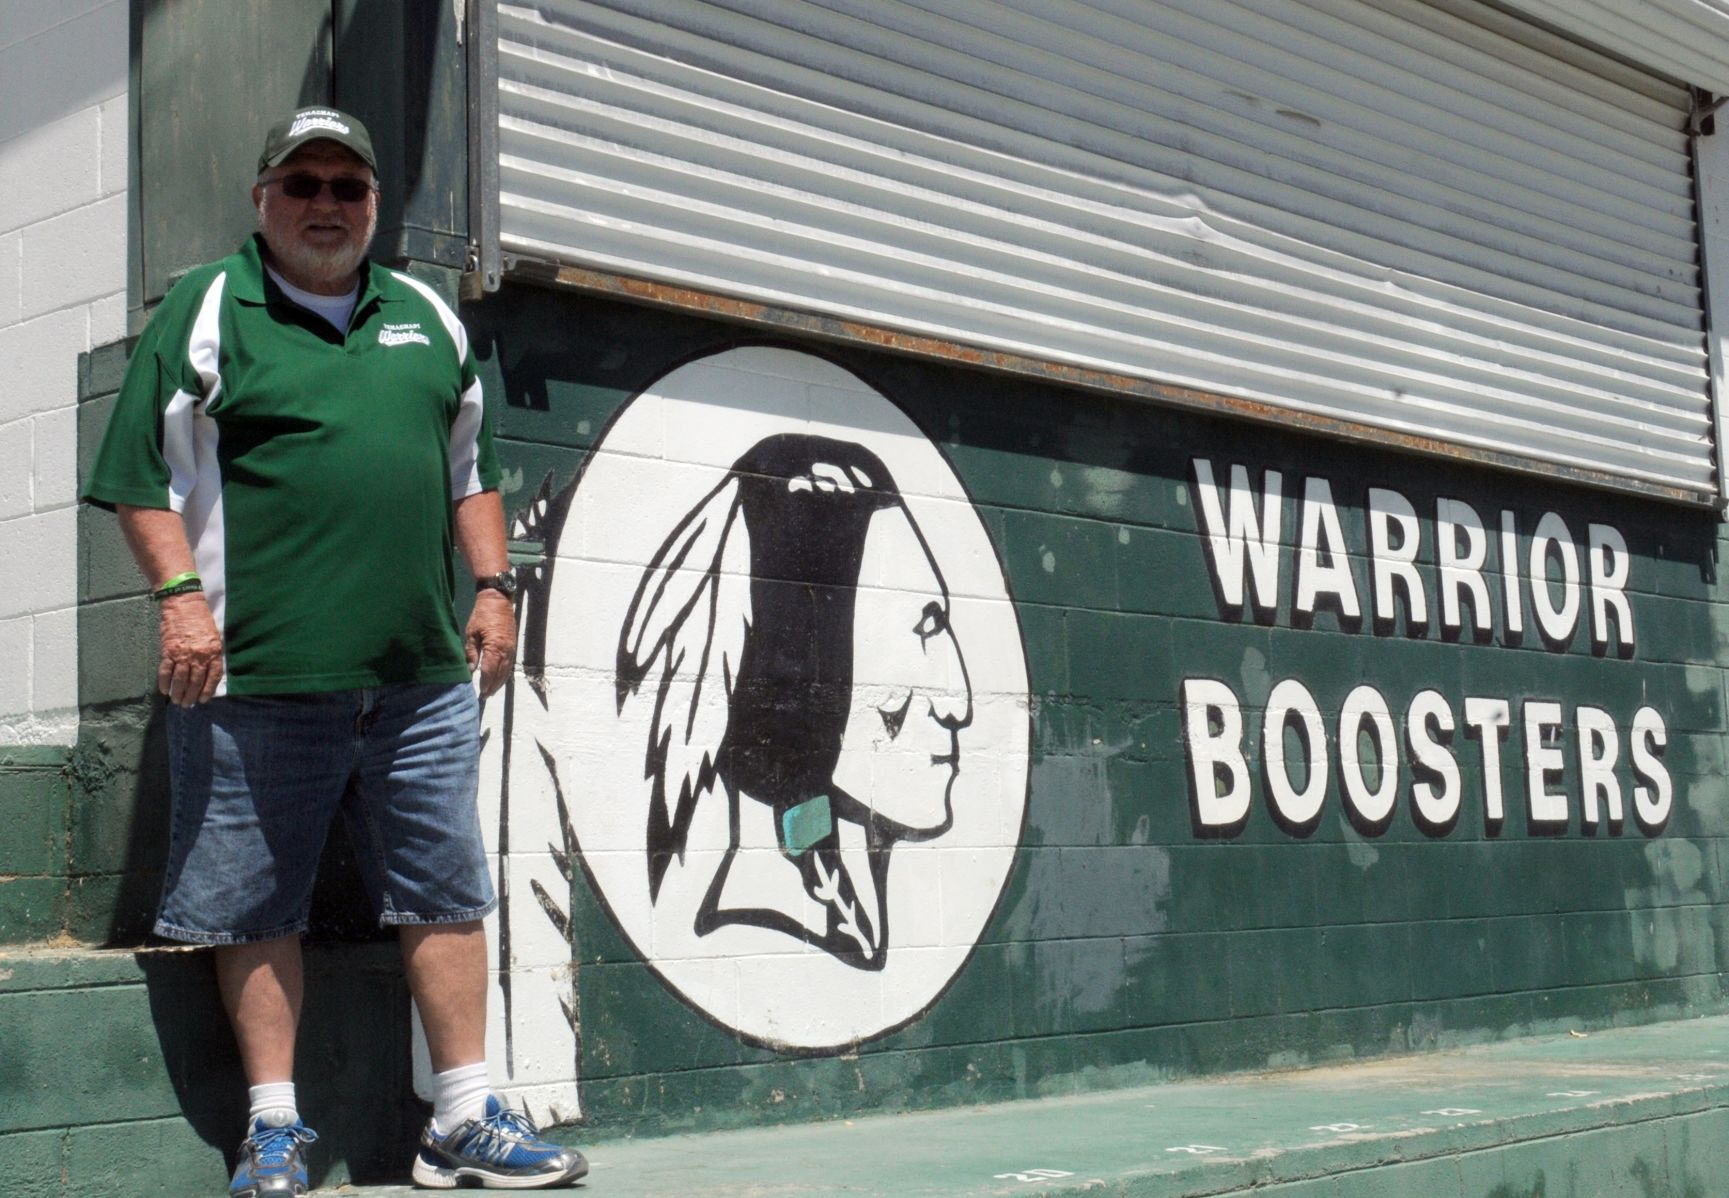 Warrior Boosters sign